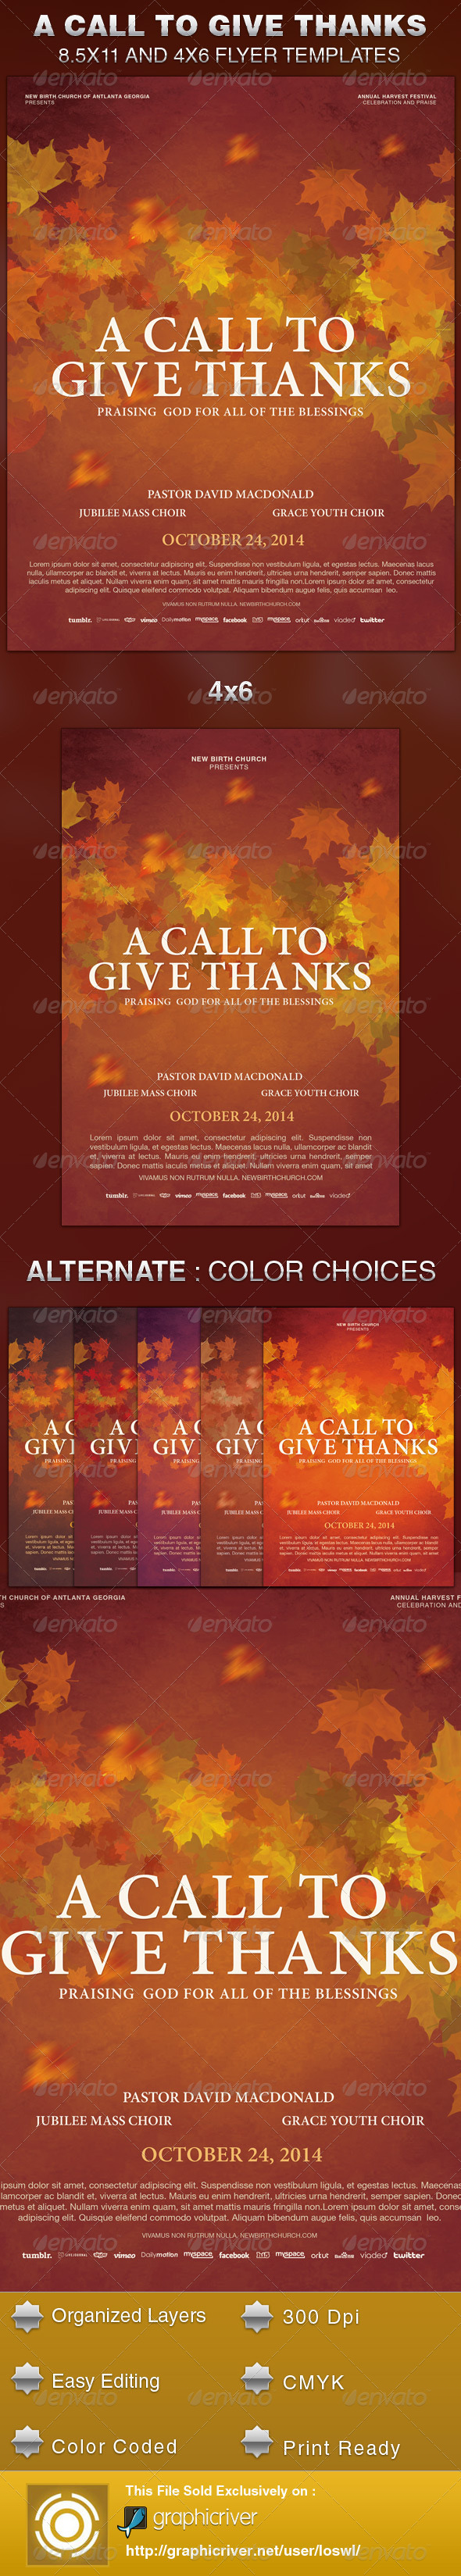 GraphicRiver A Call to Give Thanks Church Flyer Template 5996345